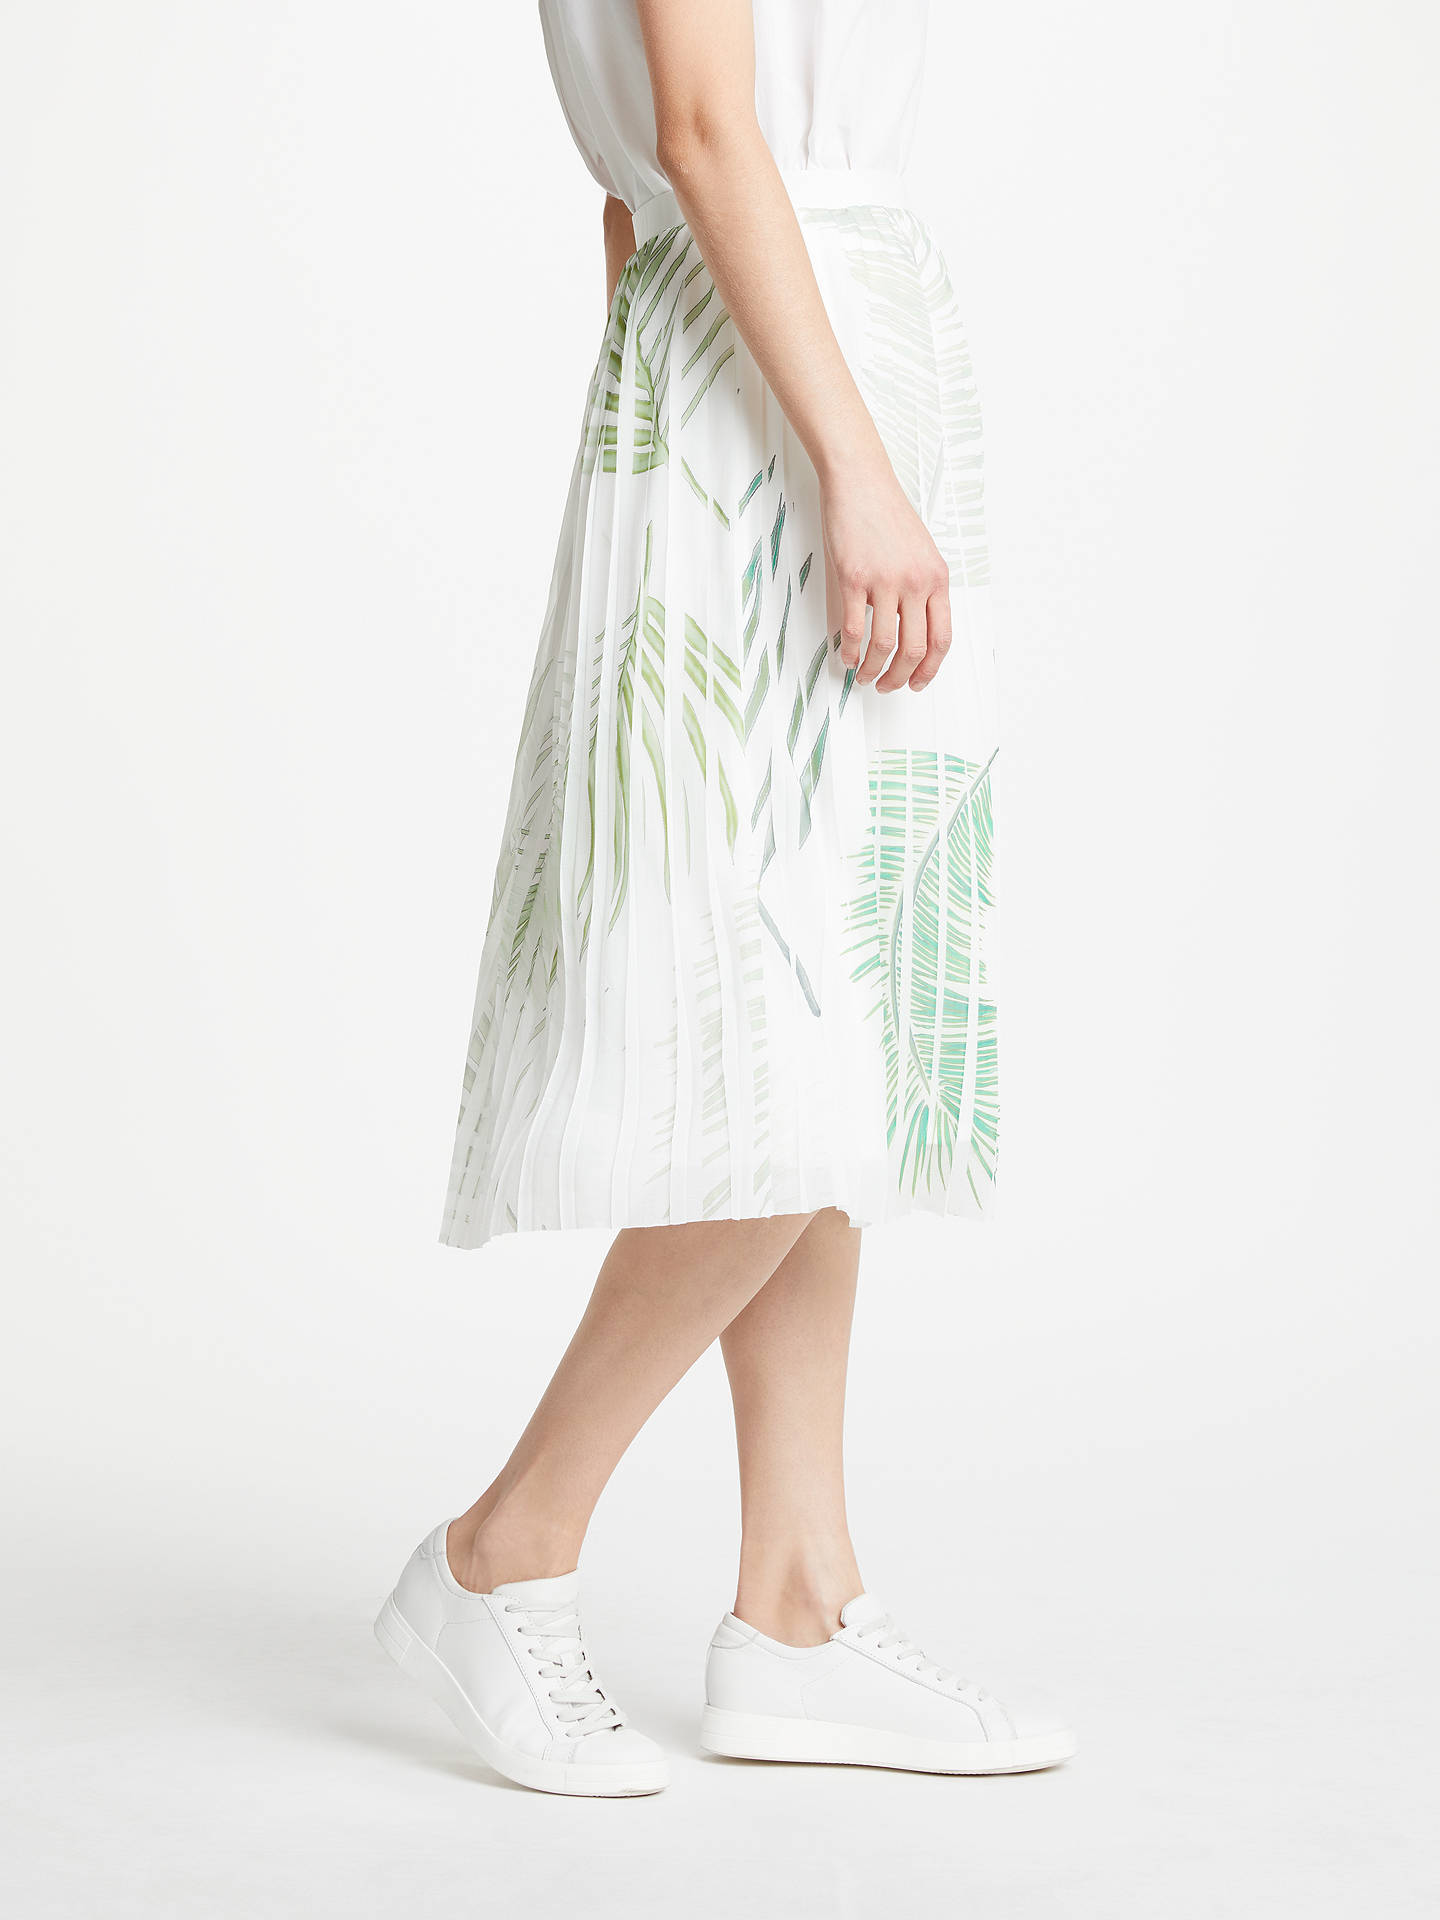 BuyGreat Plains Palm Camo Breeze Skirt, Multi, 8 Online at johnlewis.com